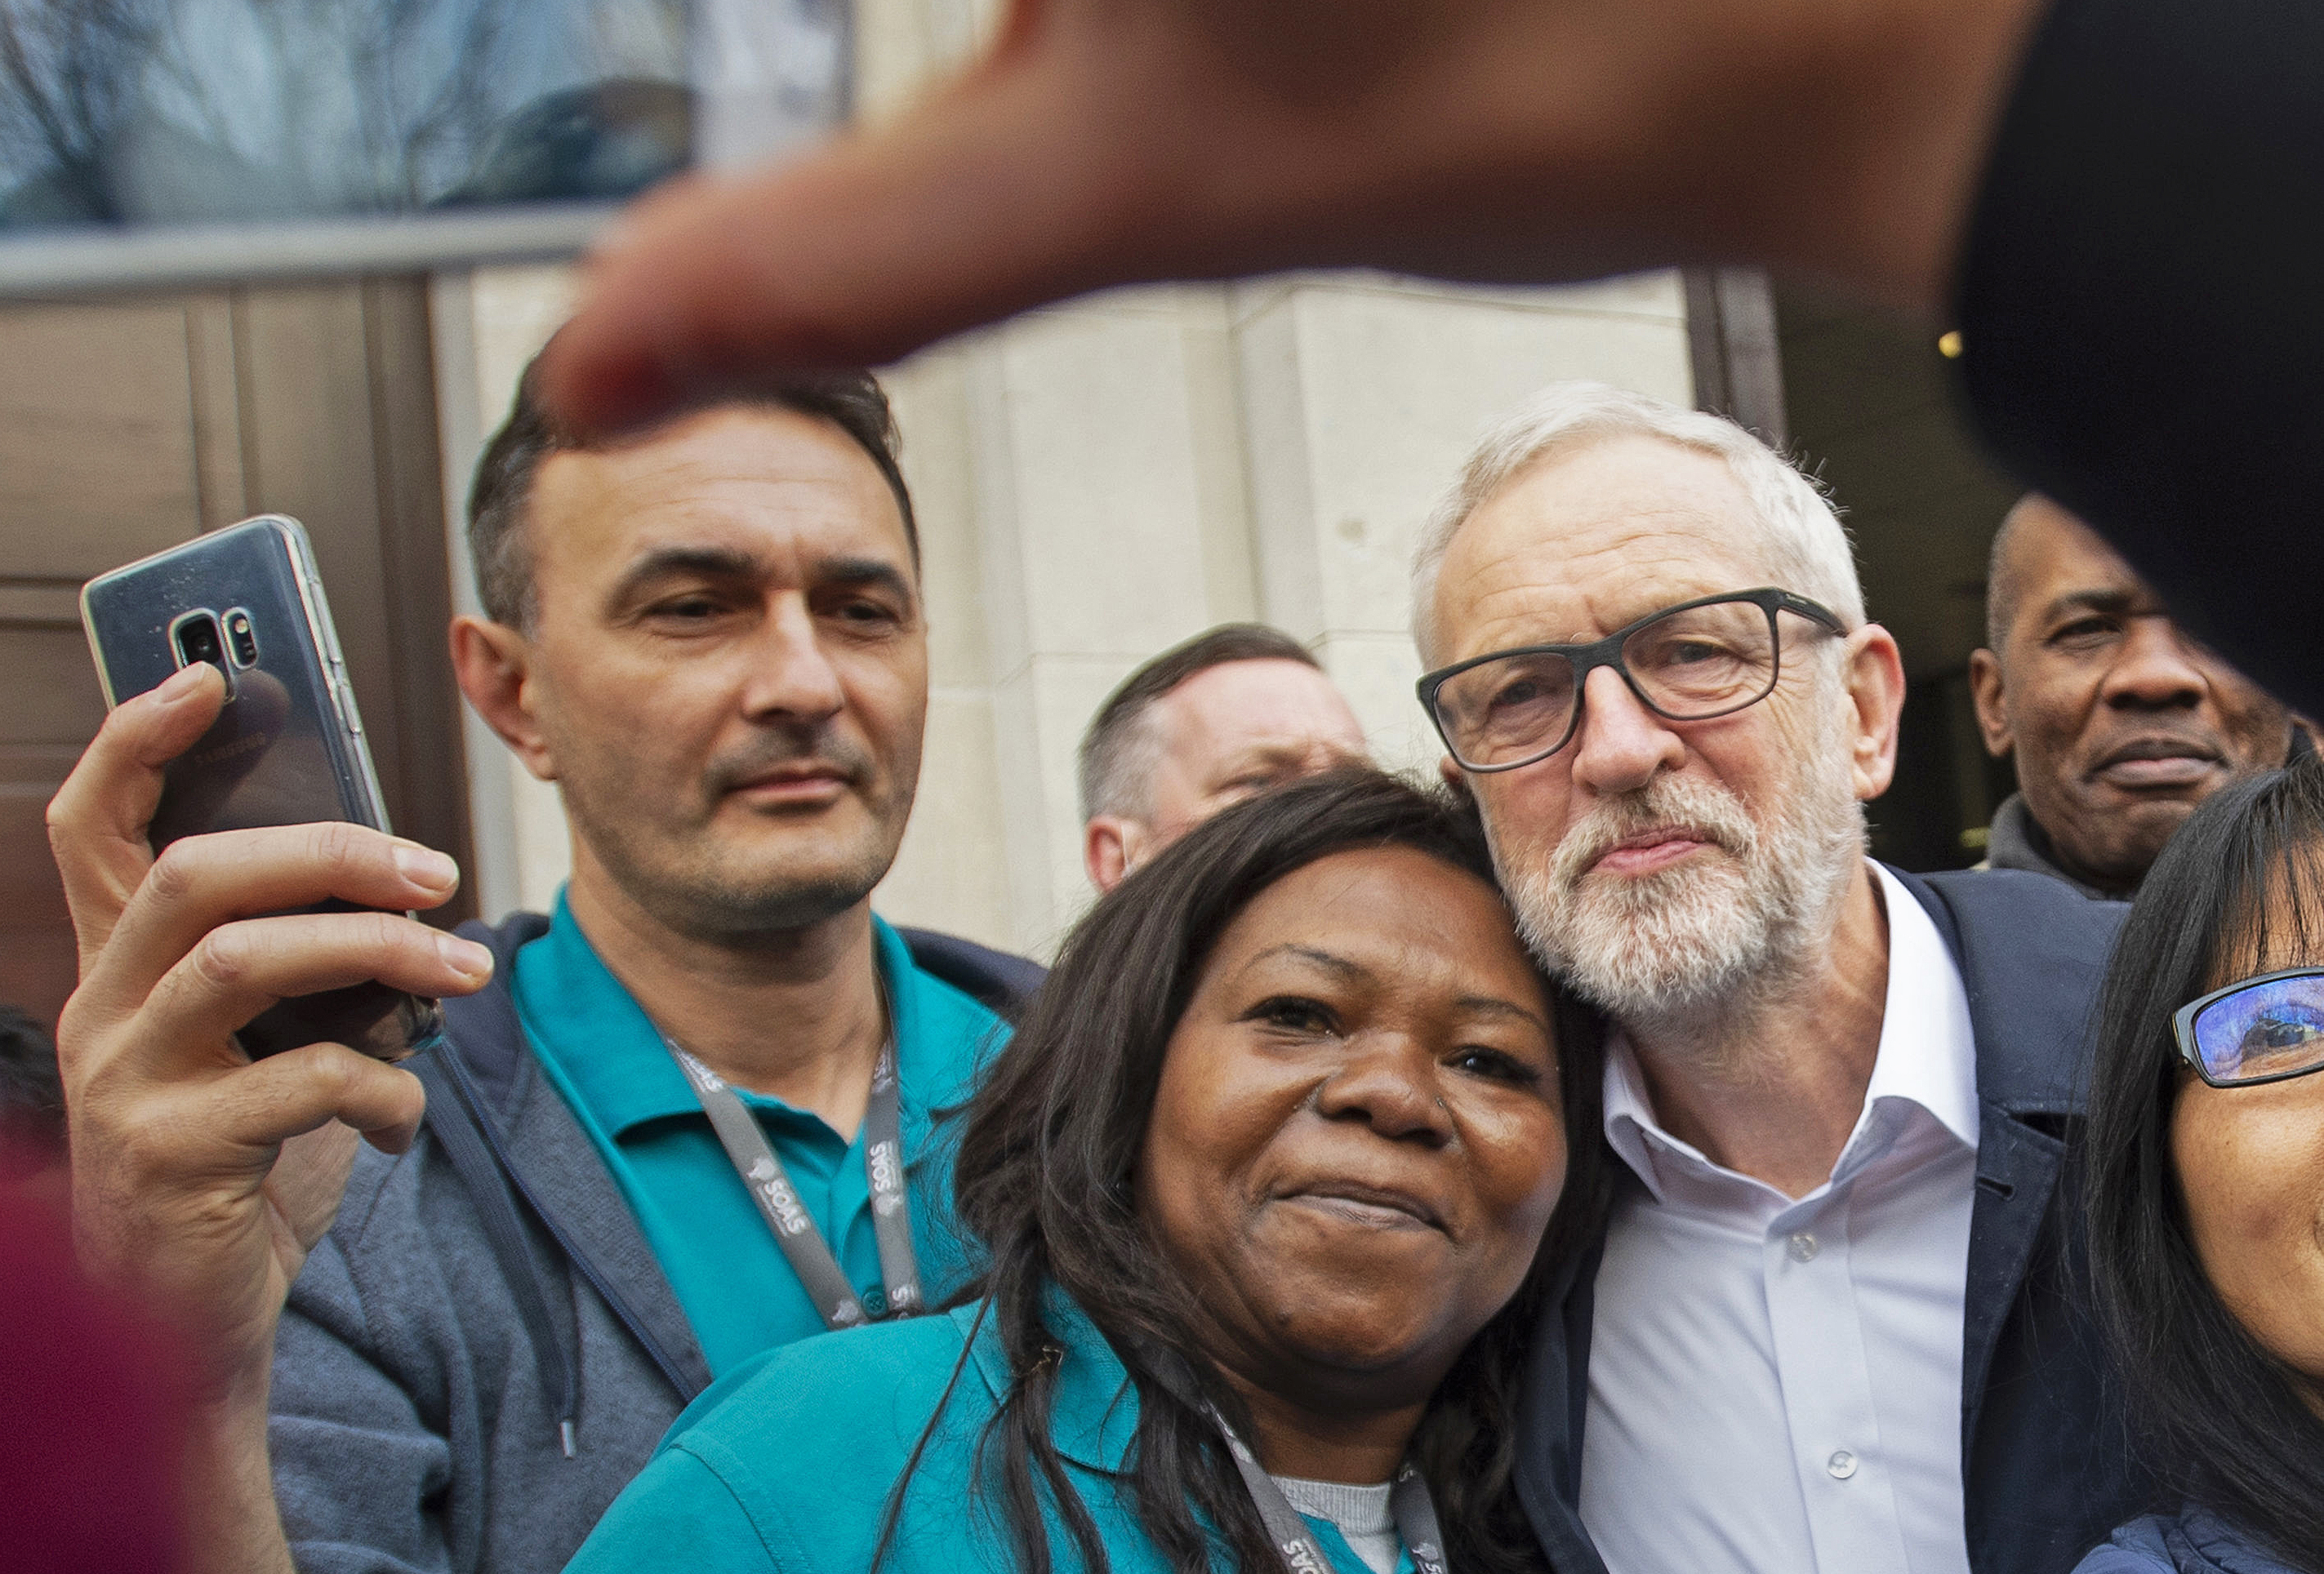 Labour leader Jeremy Corbyn has a photo taken outside Birkbeck/SOAS University of London, at the announcement of his parties of the plan for the extension of workers?? rights, whilst on the General Election campaign trail.